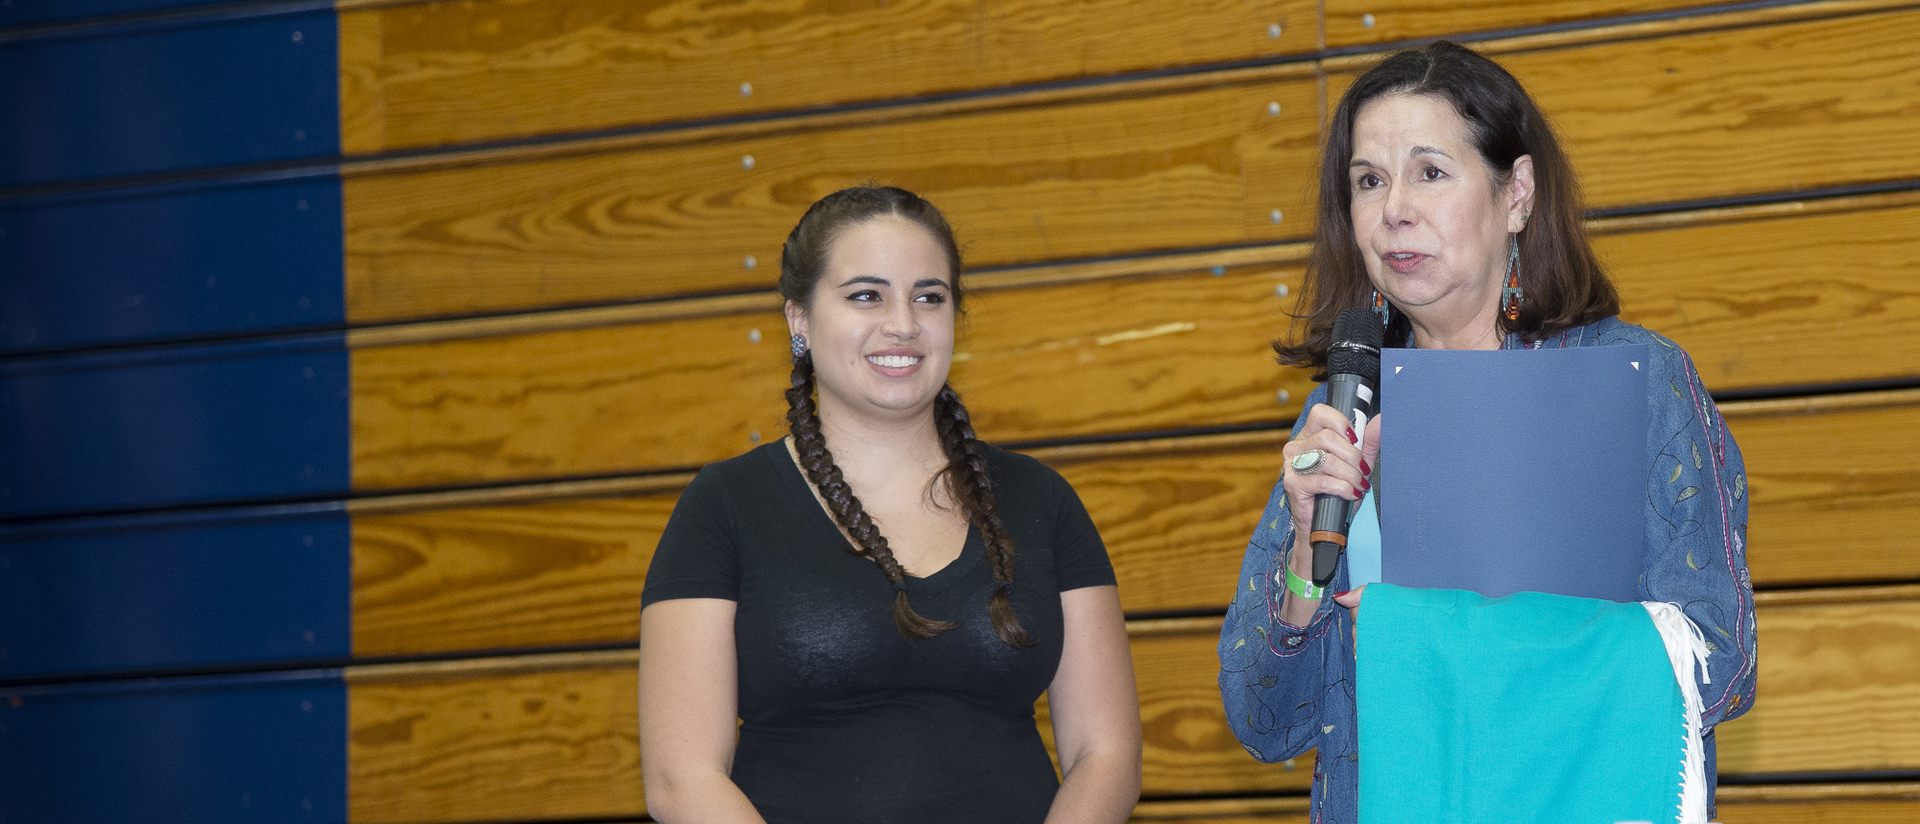 Student receiving a scholarship at the Honoring Education Powwow